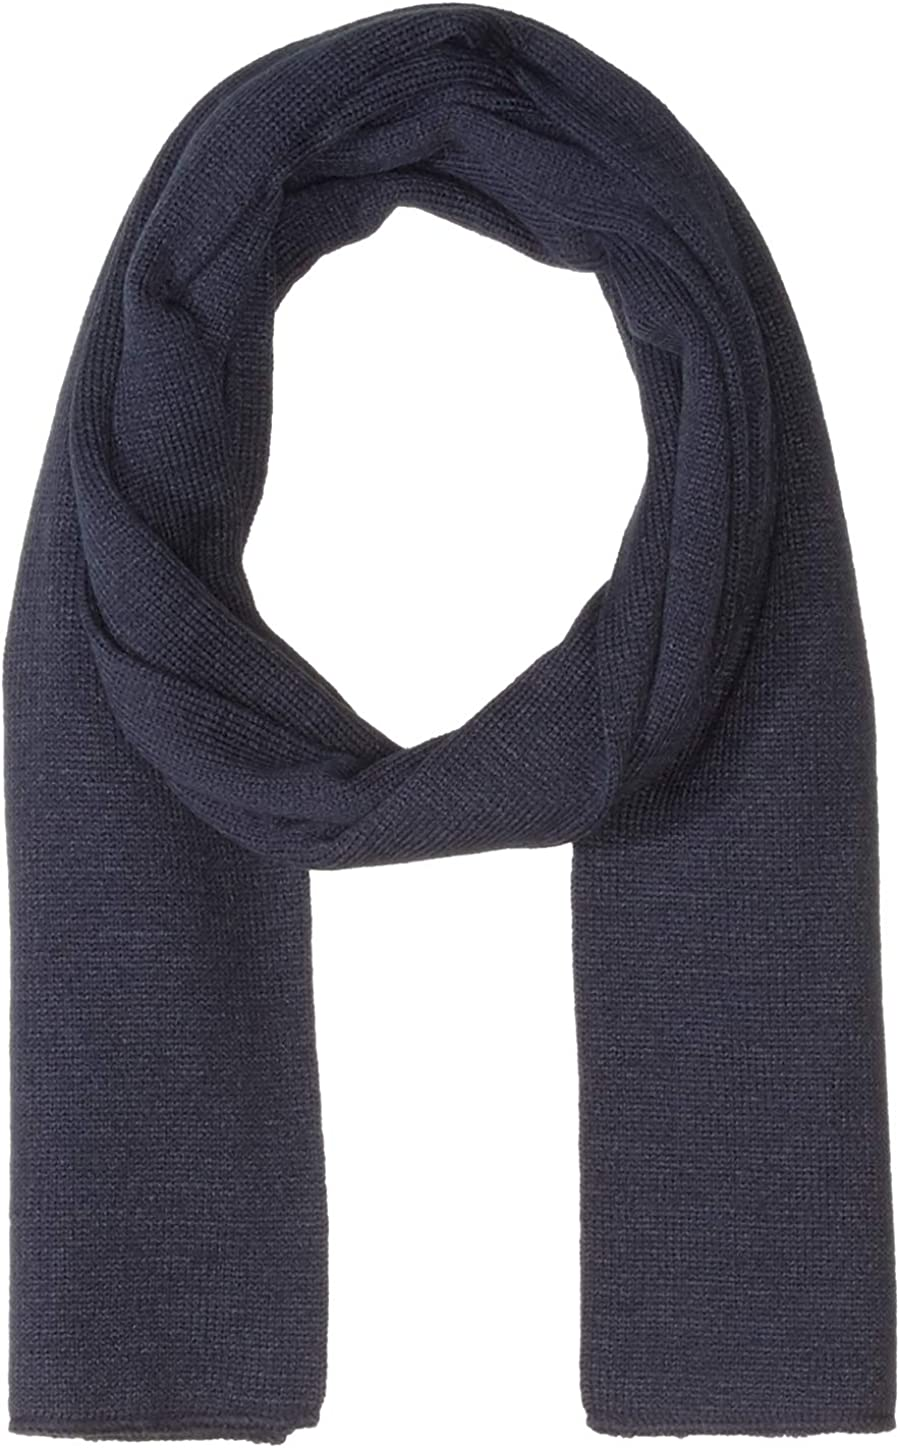 Clementine Apparel Men's Soft Warm Knitted Winter Scarf (Pack of 6), Navy, One Size